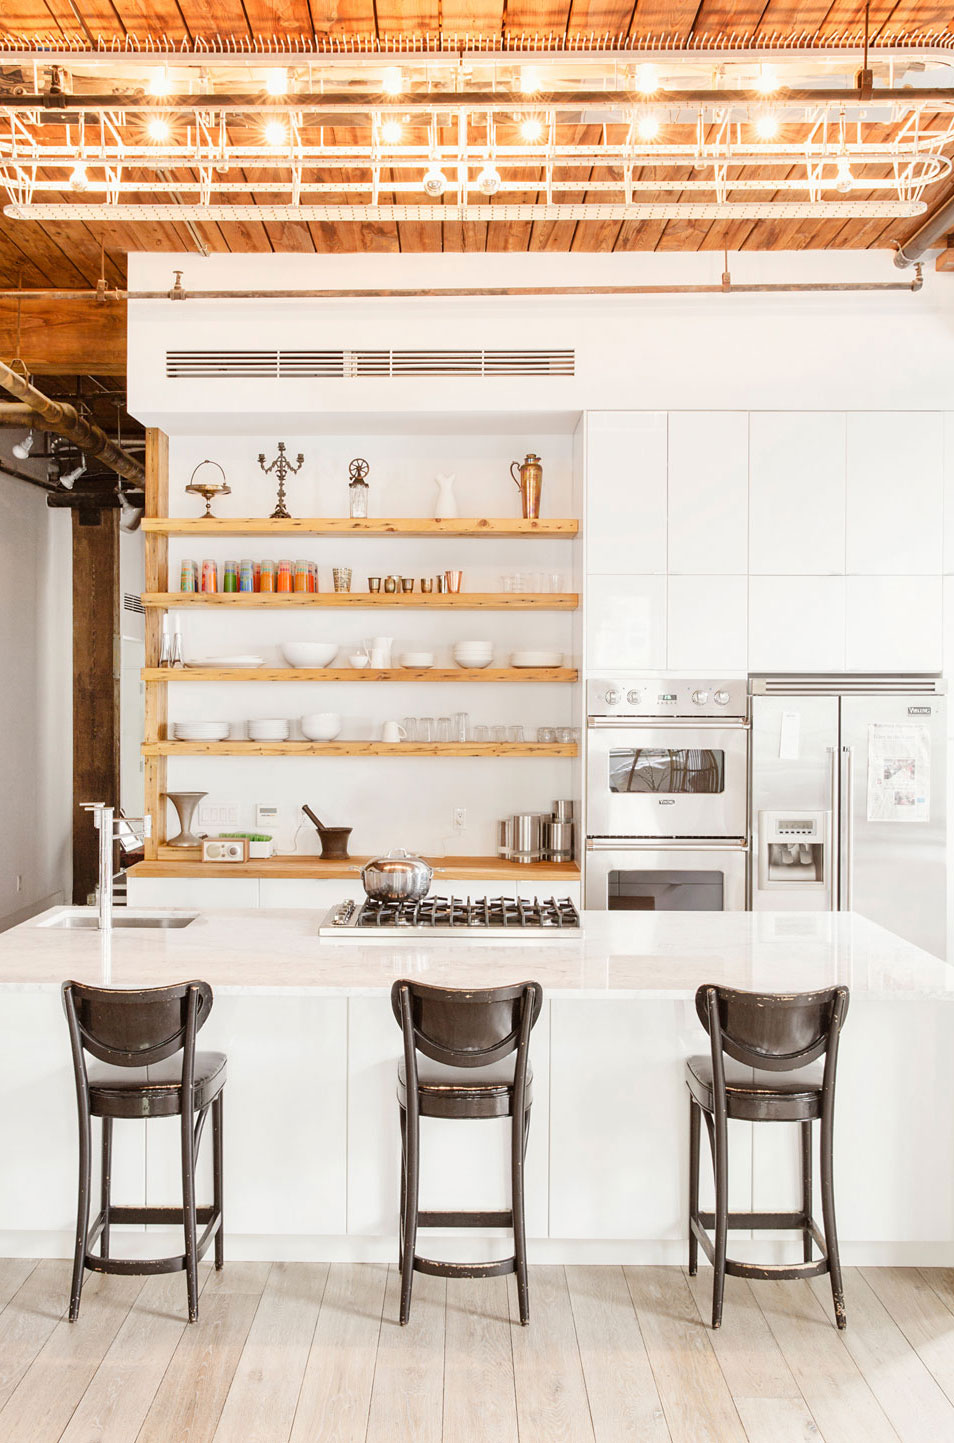 Williamsburg Loft in New York City by Ensemble Architecture-04